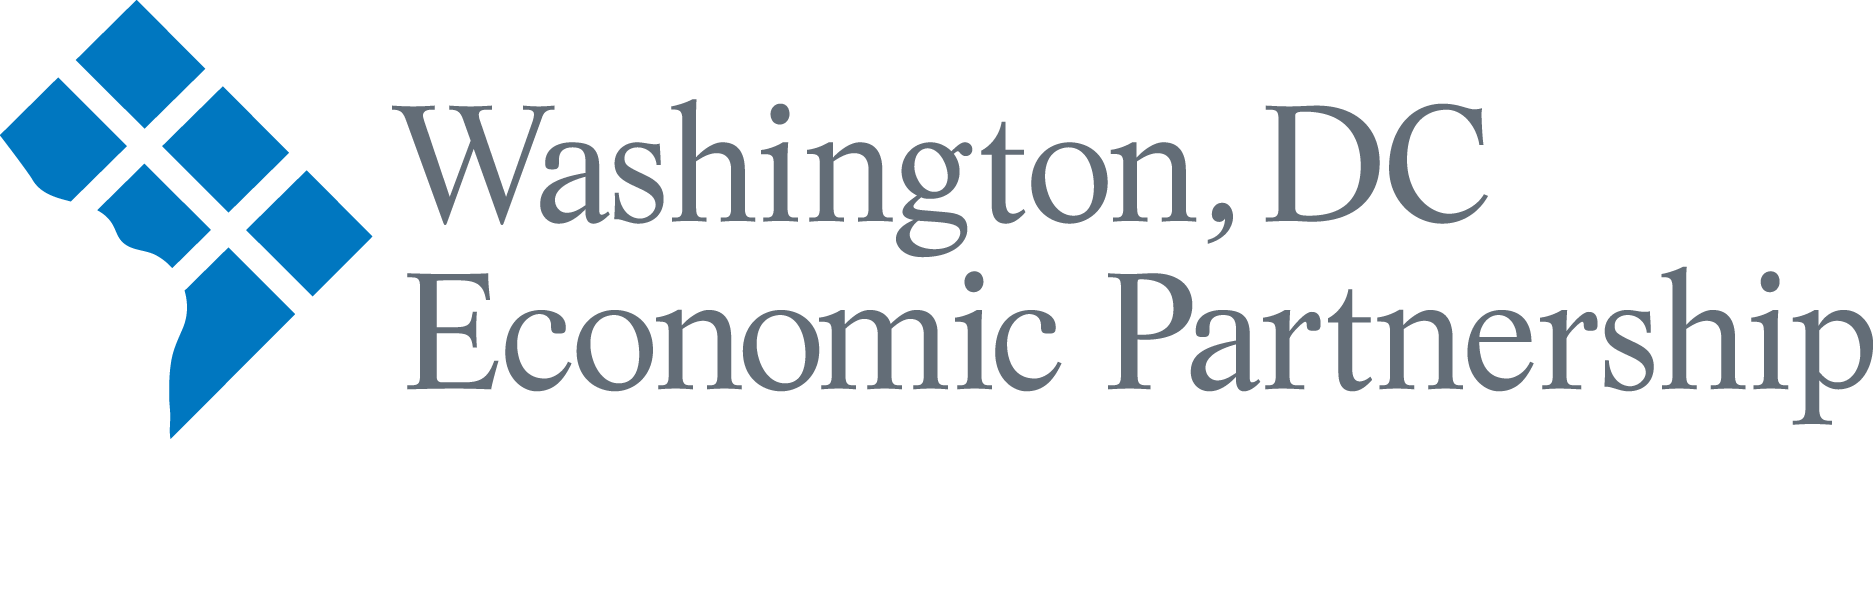 Washington DC Economic Partnership Logo